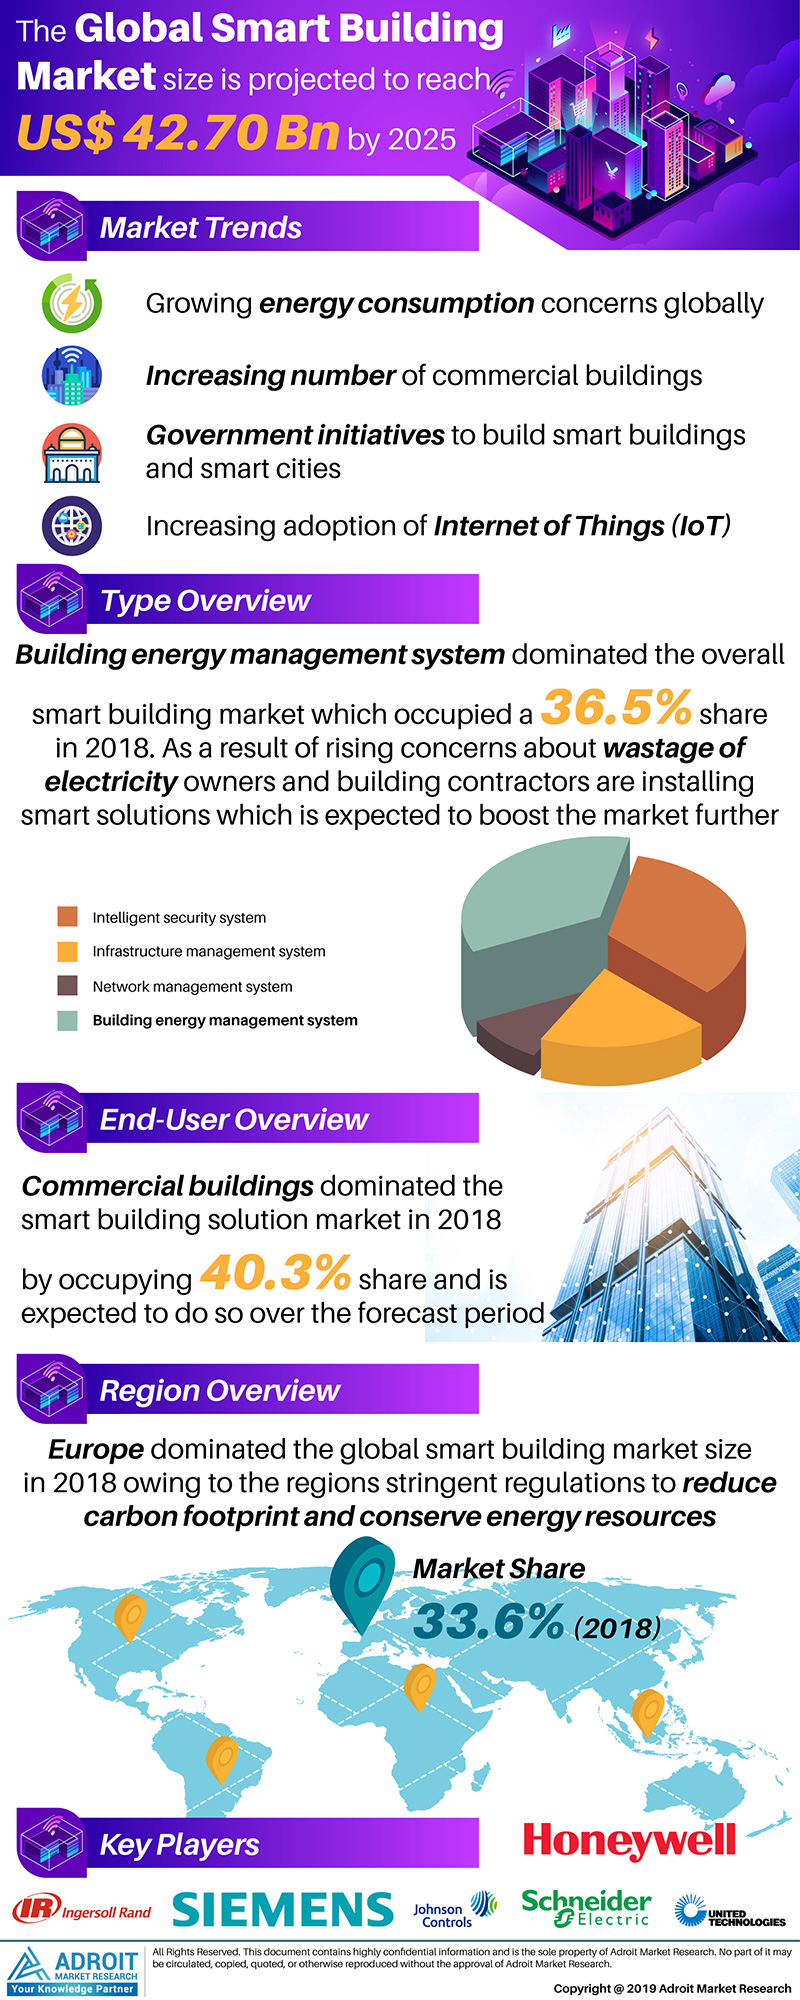 Global Smart Building Market Size 2017 By Type, End-Use, Region and Forecast 2018 to 2025